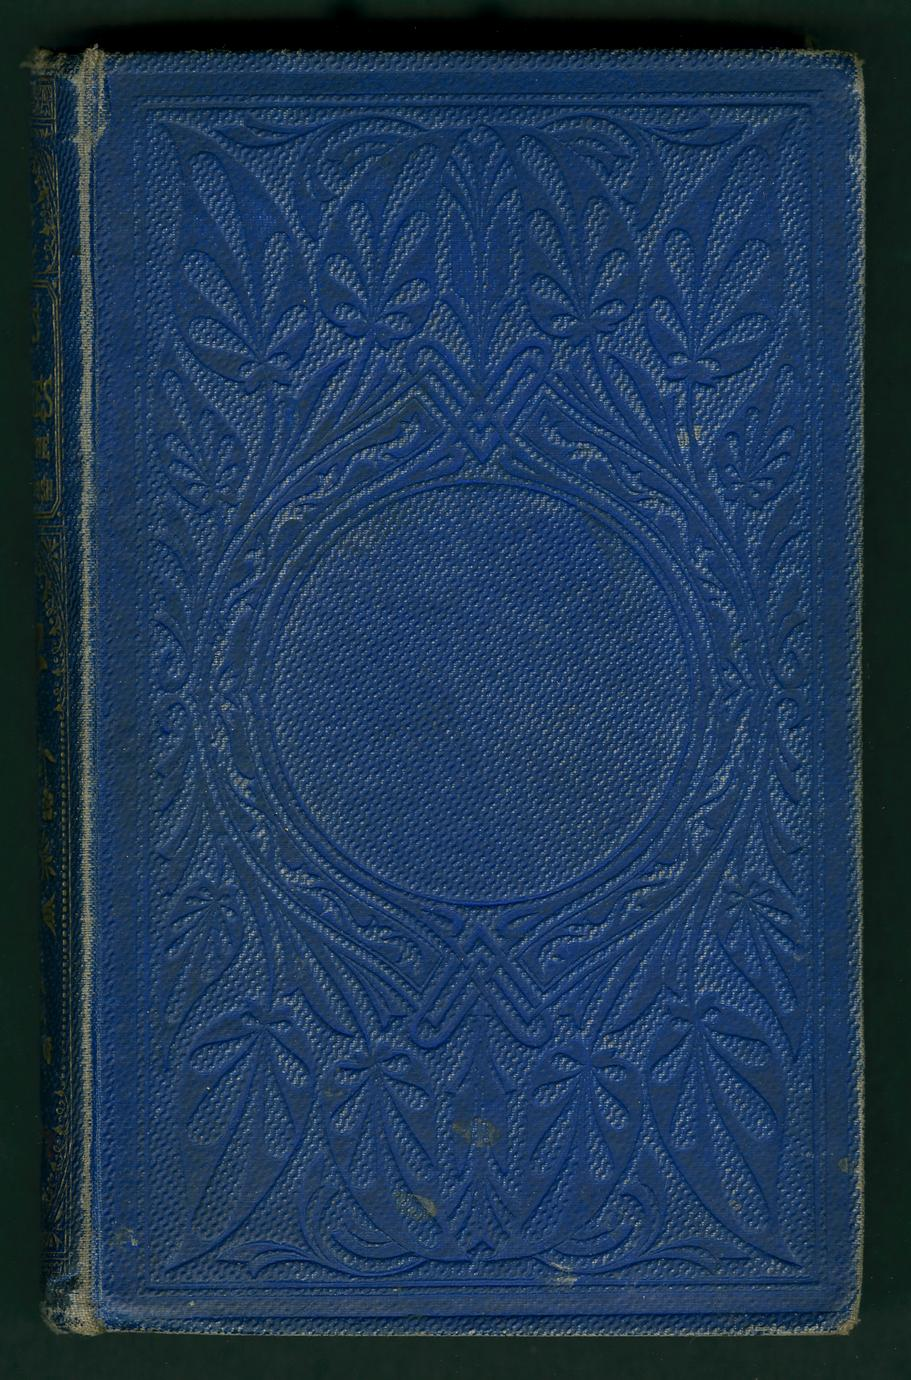 Tares and sketches by American authoresses (1 of 2)